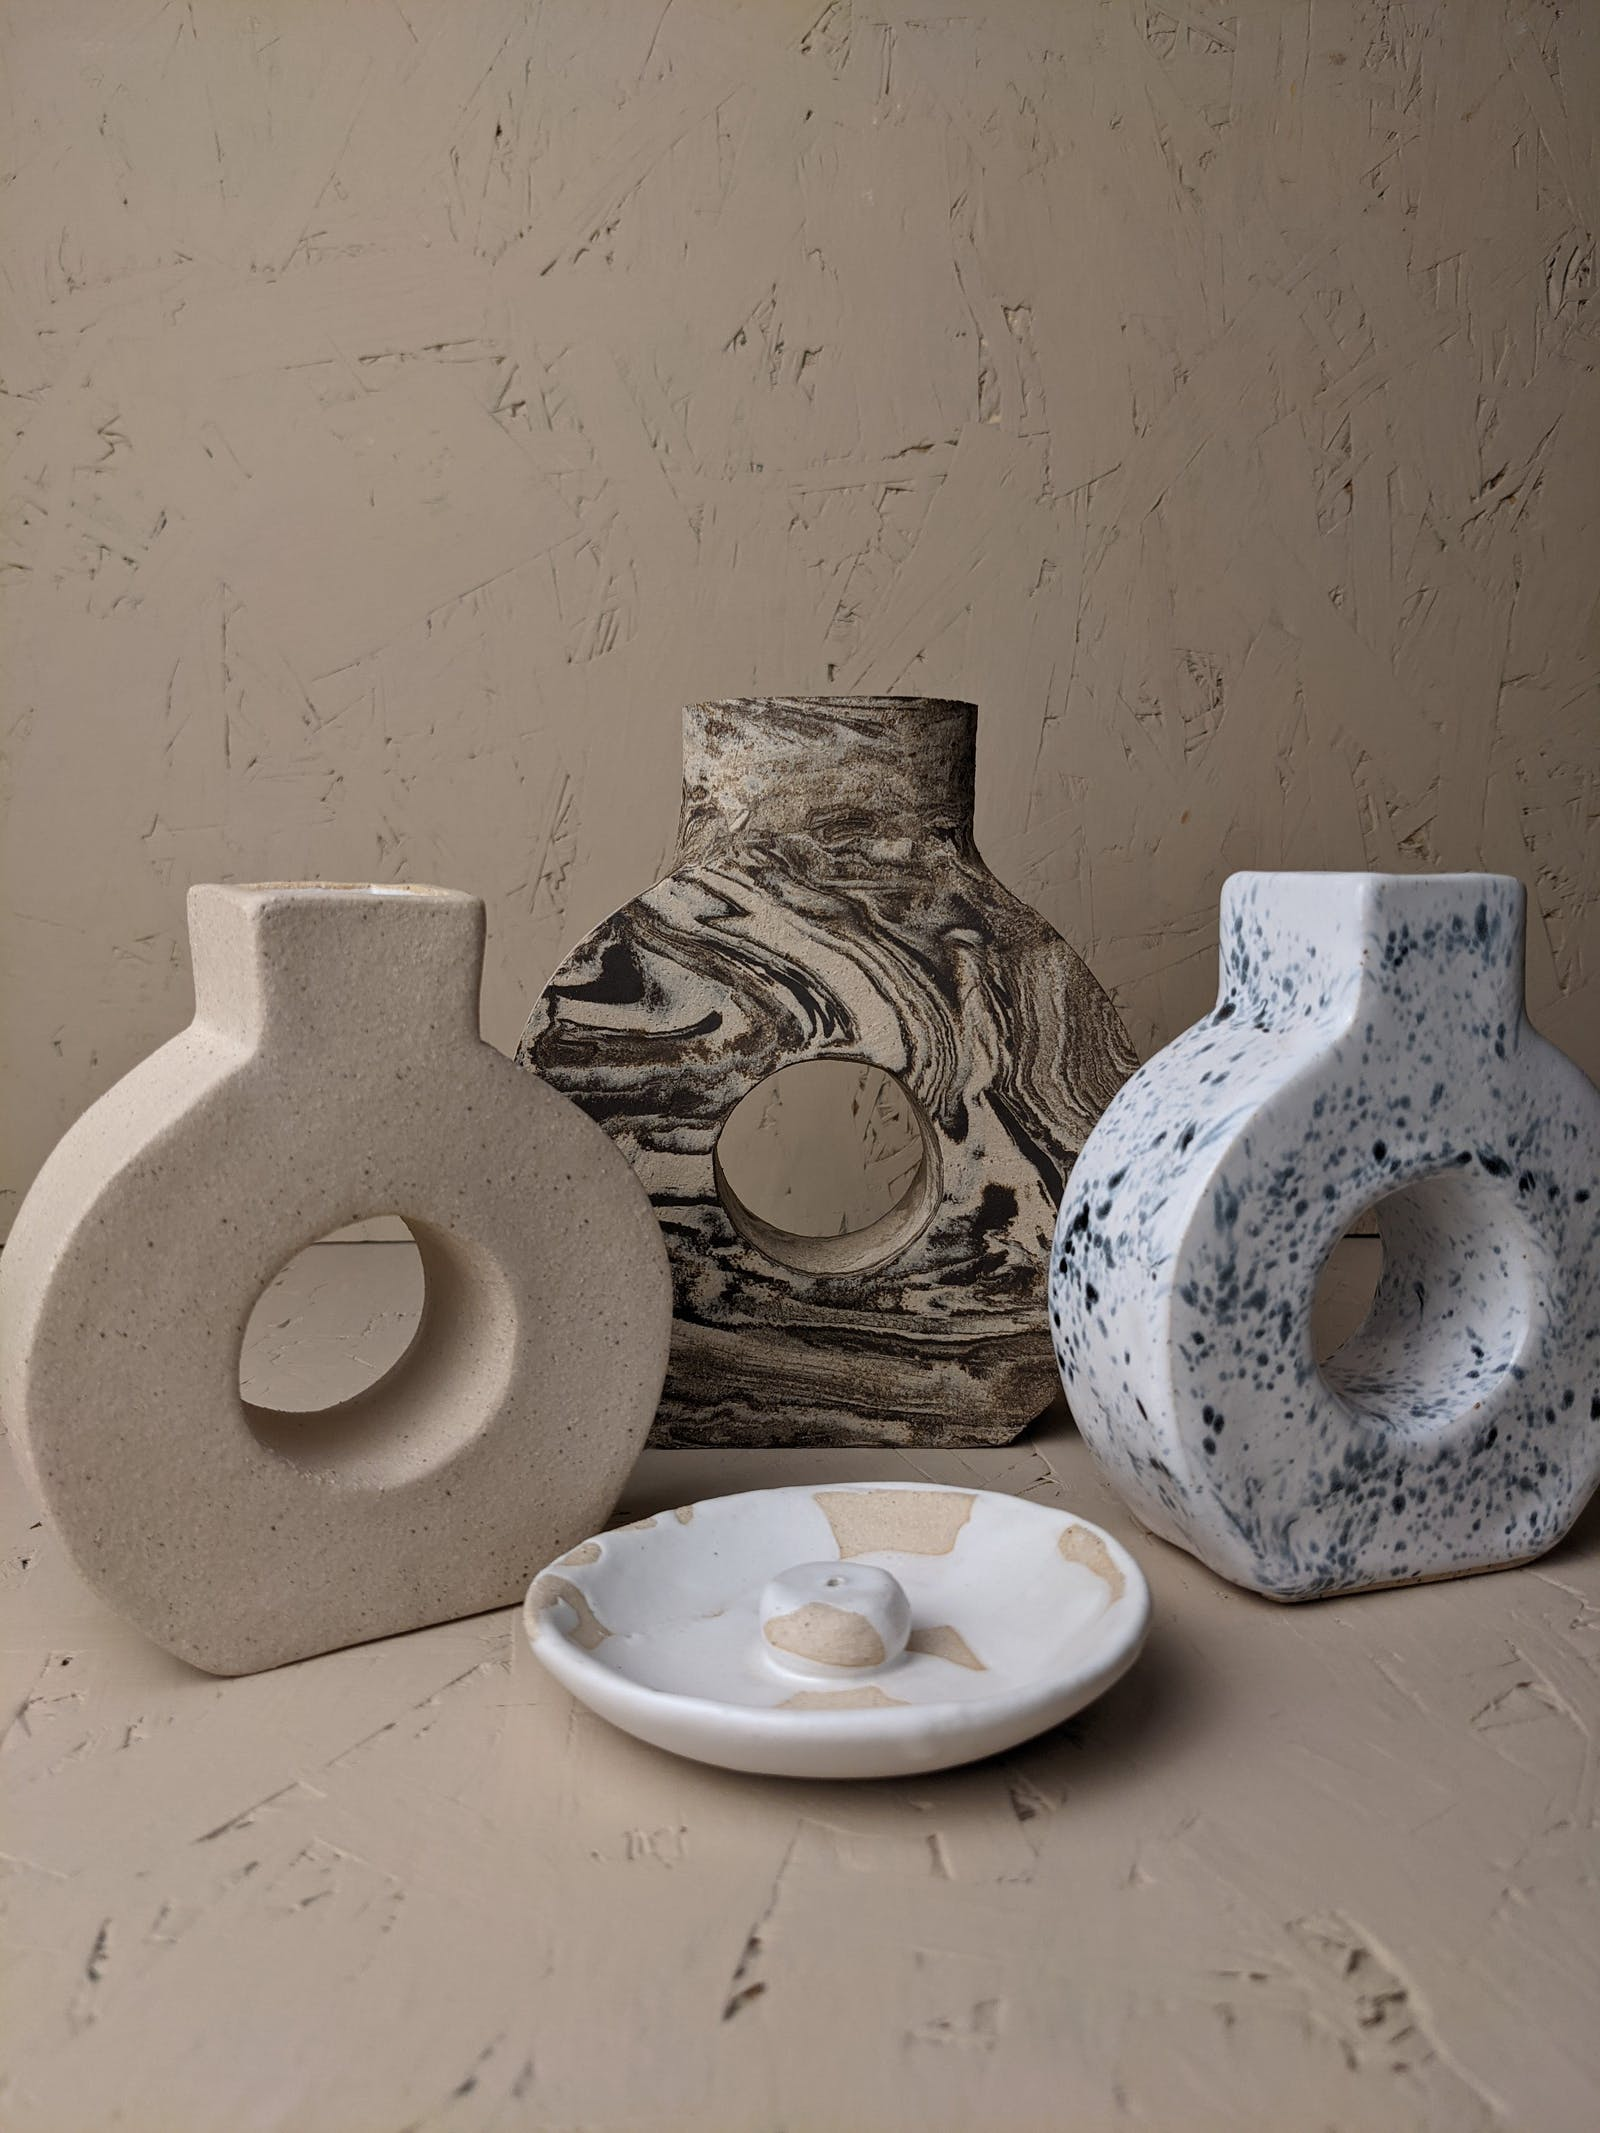 An assortment of vases with unique prints on them